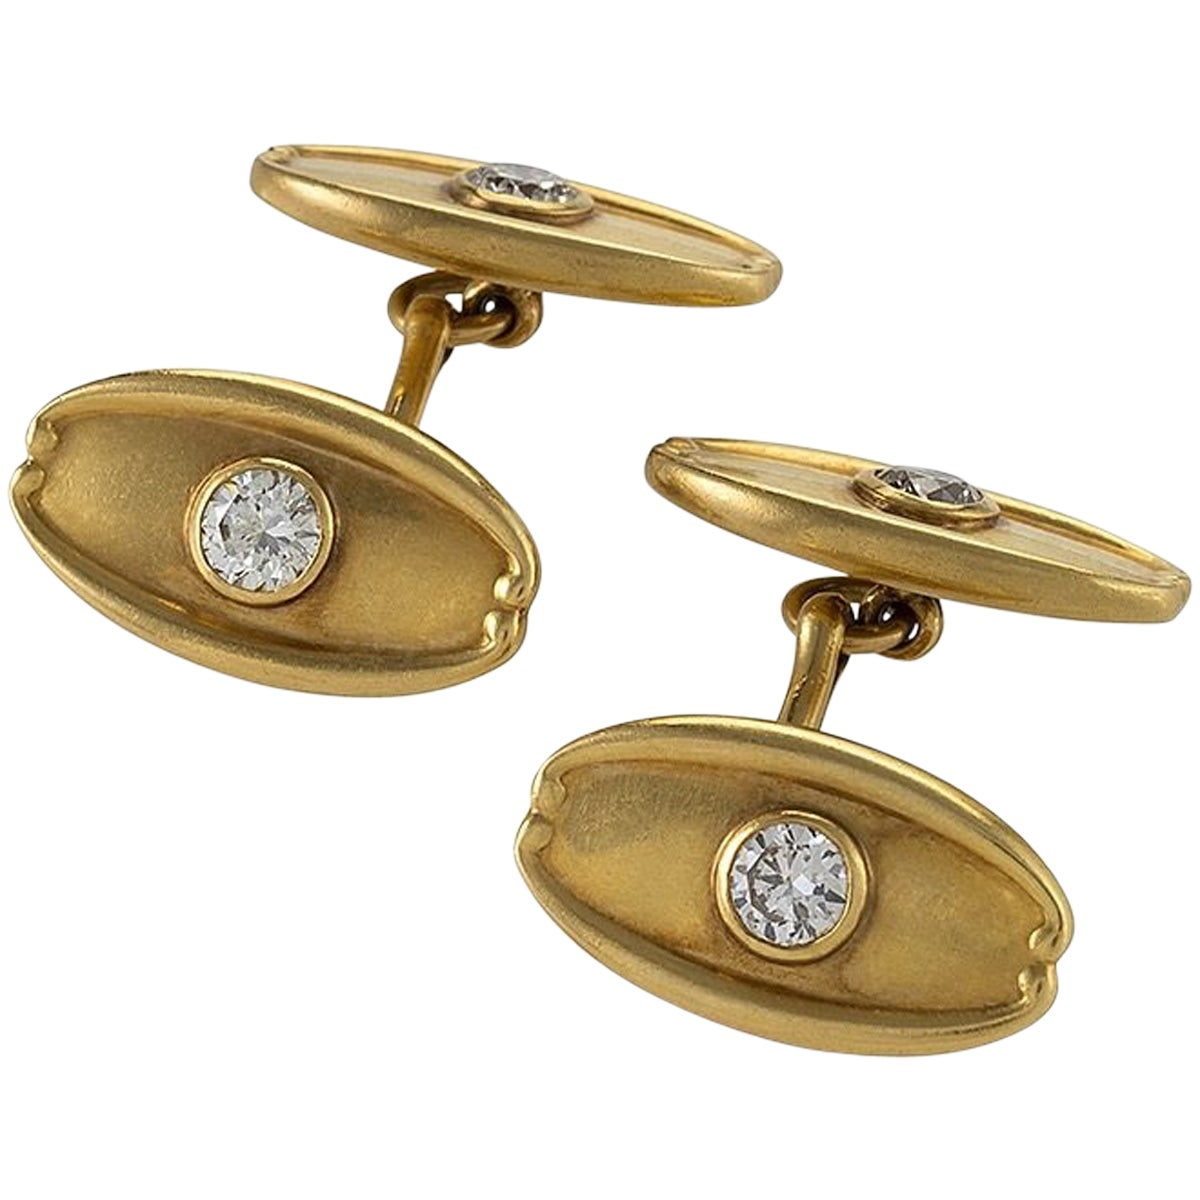 Antique Tiffany & Co. Diamond and Gold Cuff Links